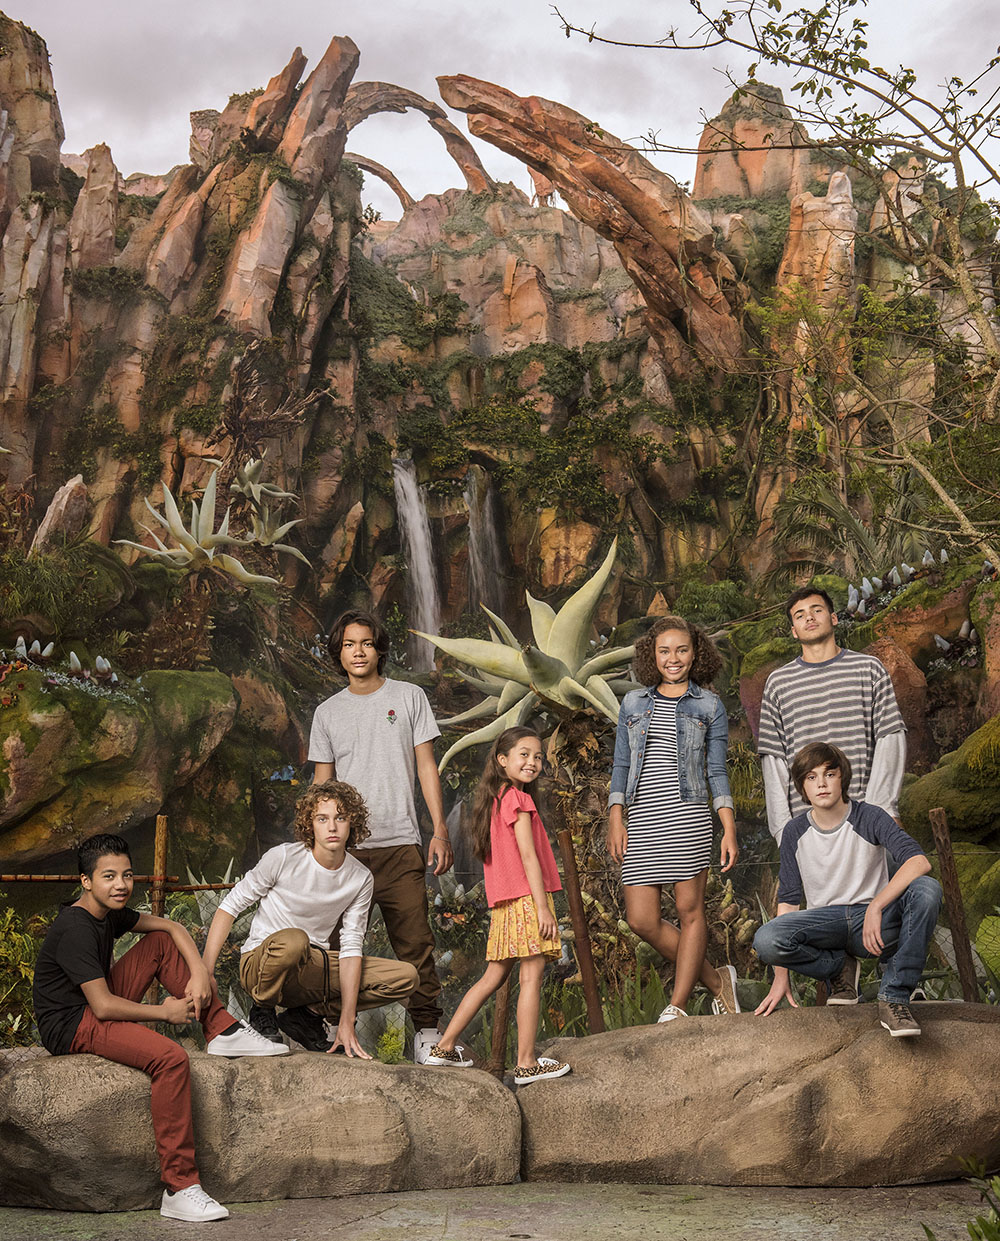 Avatar Cast: Avatar Sequels' Young Cast Members Revealed